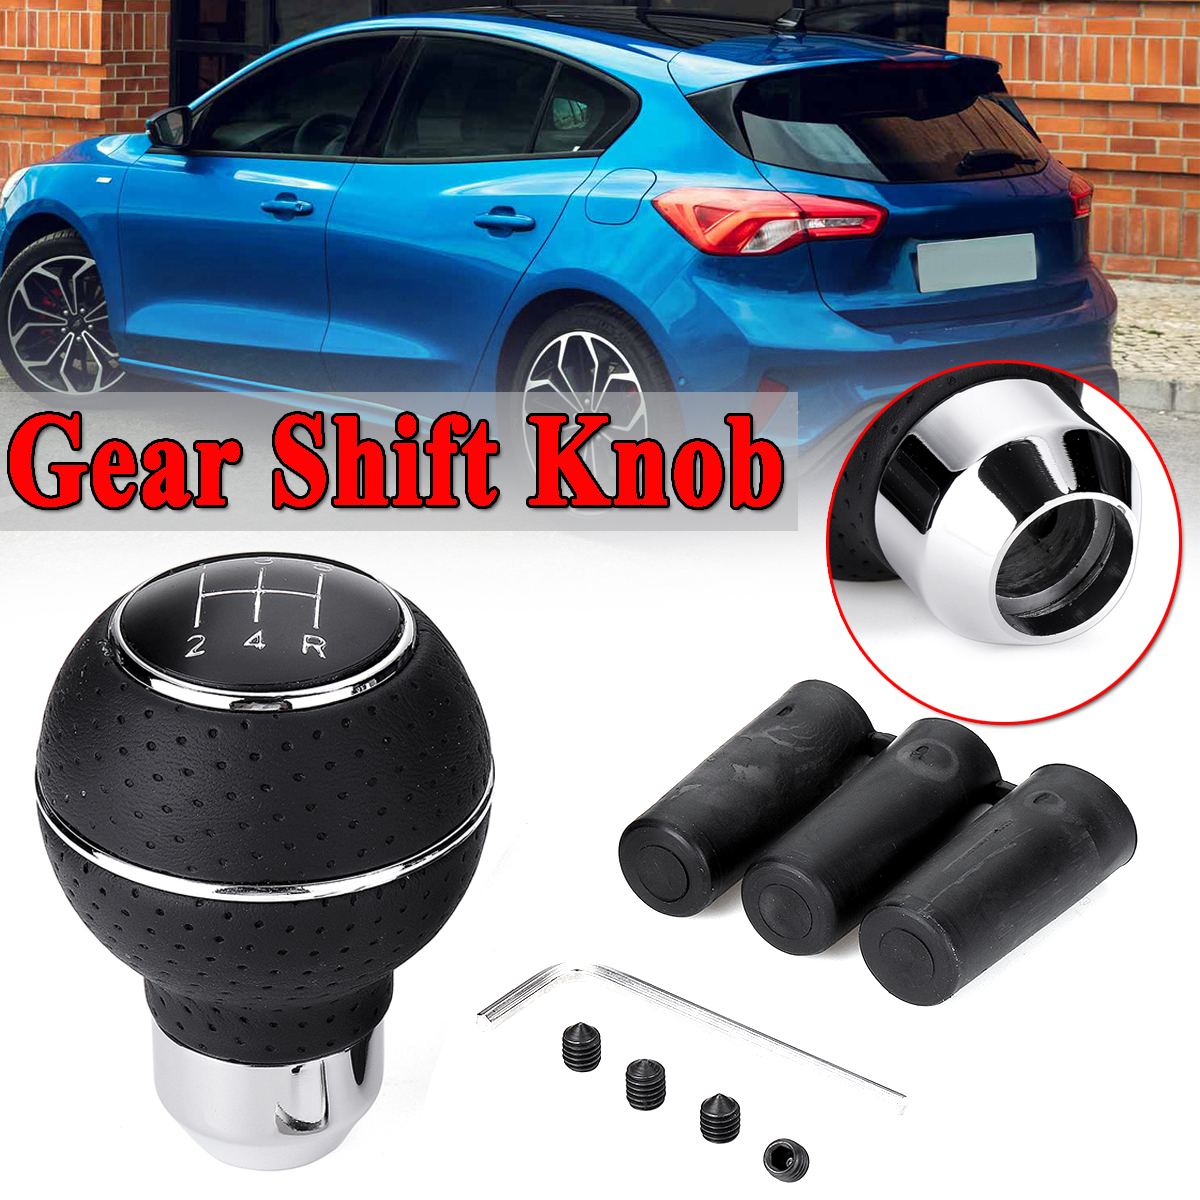 5 Speed Gear Shift Knob with Sleeve Adapter Lever Black for Ford Focus Mondeo Fiesta